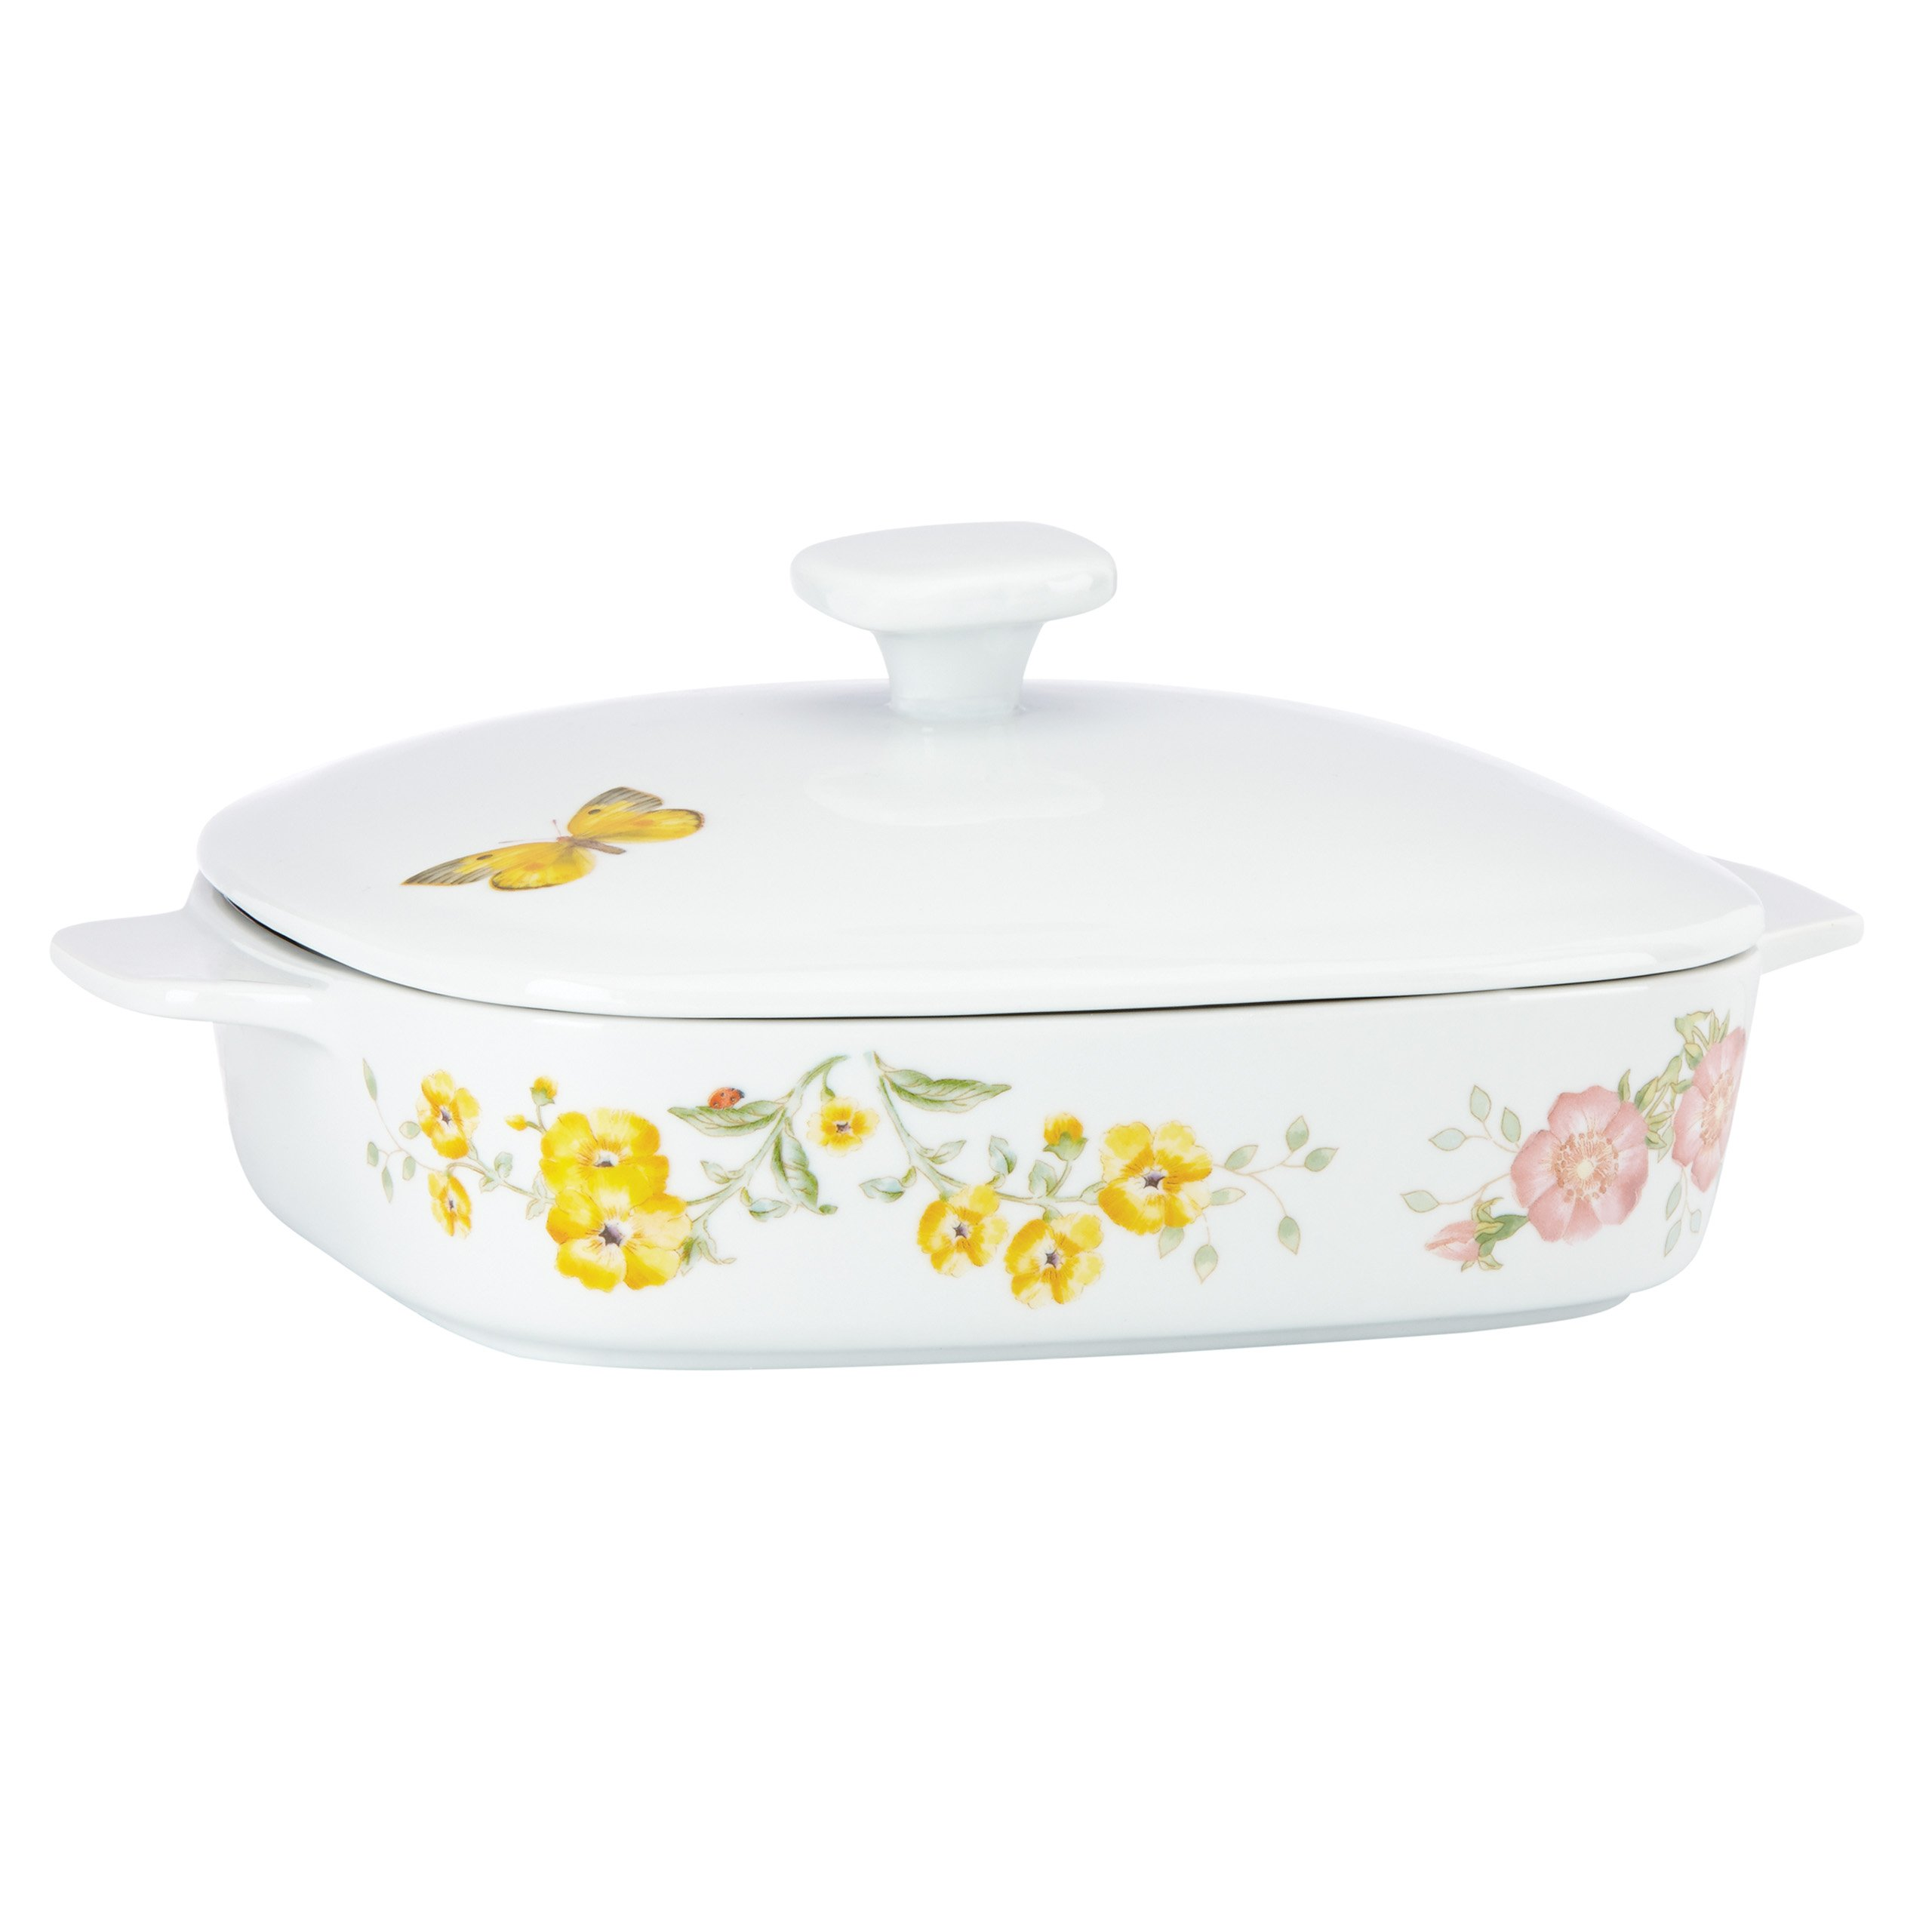 Lenox Butterfly Meadow Square Covered Casserole, 2 piece